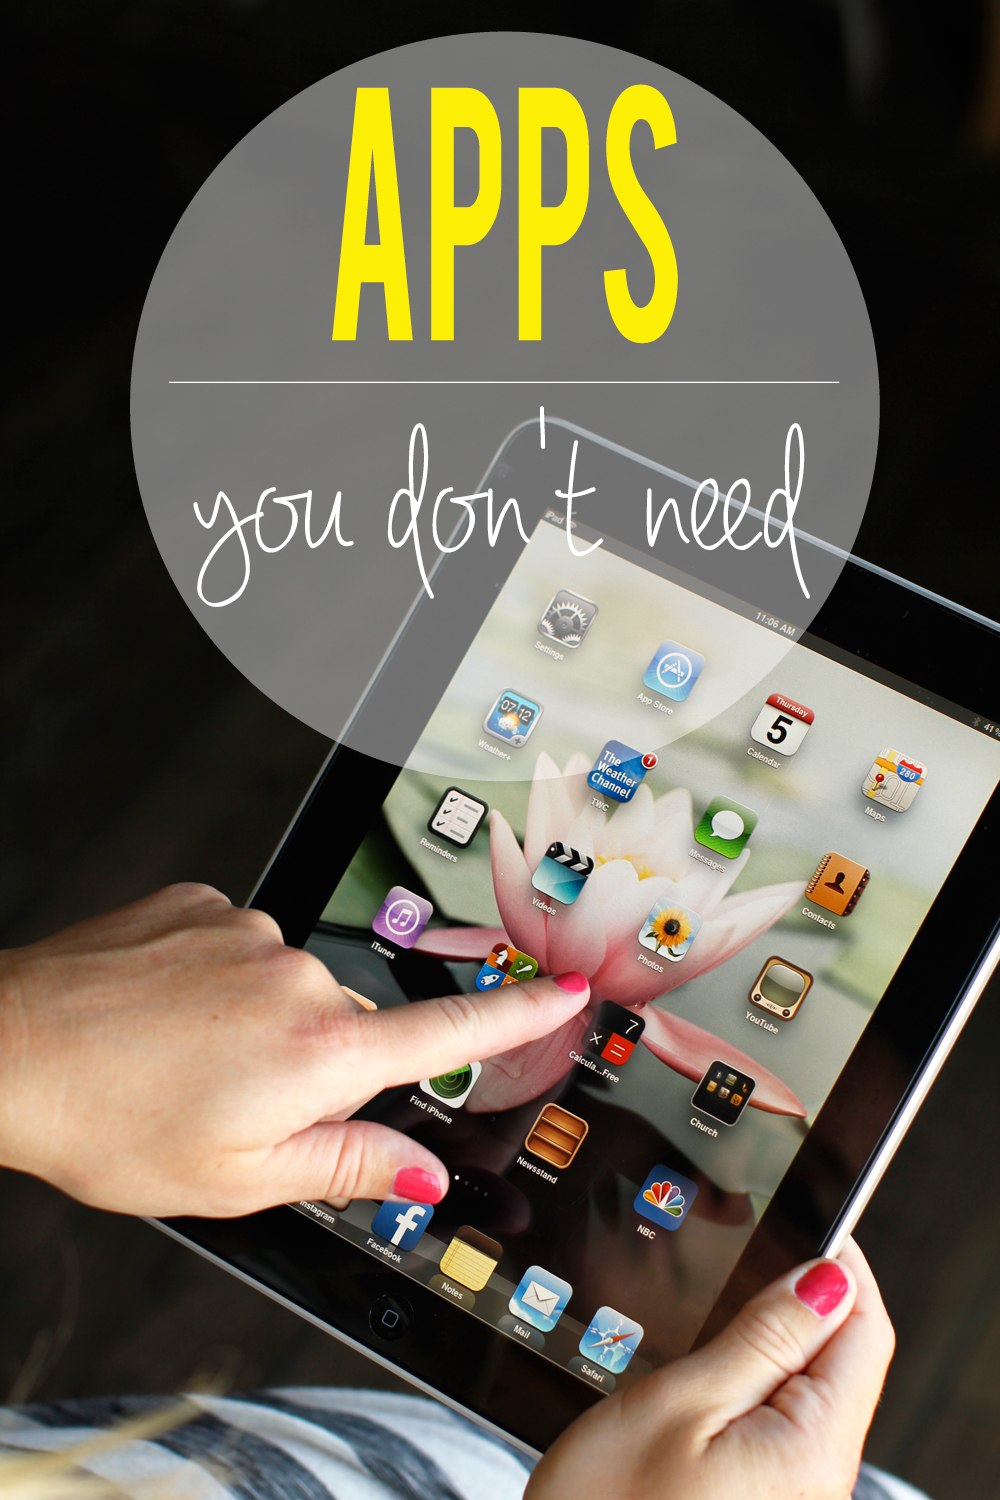 apps you don't need